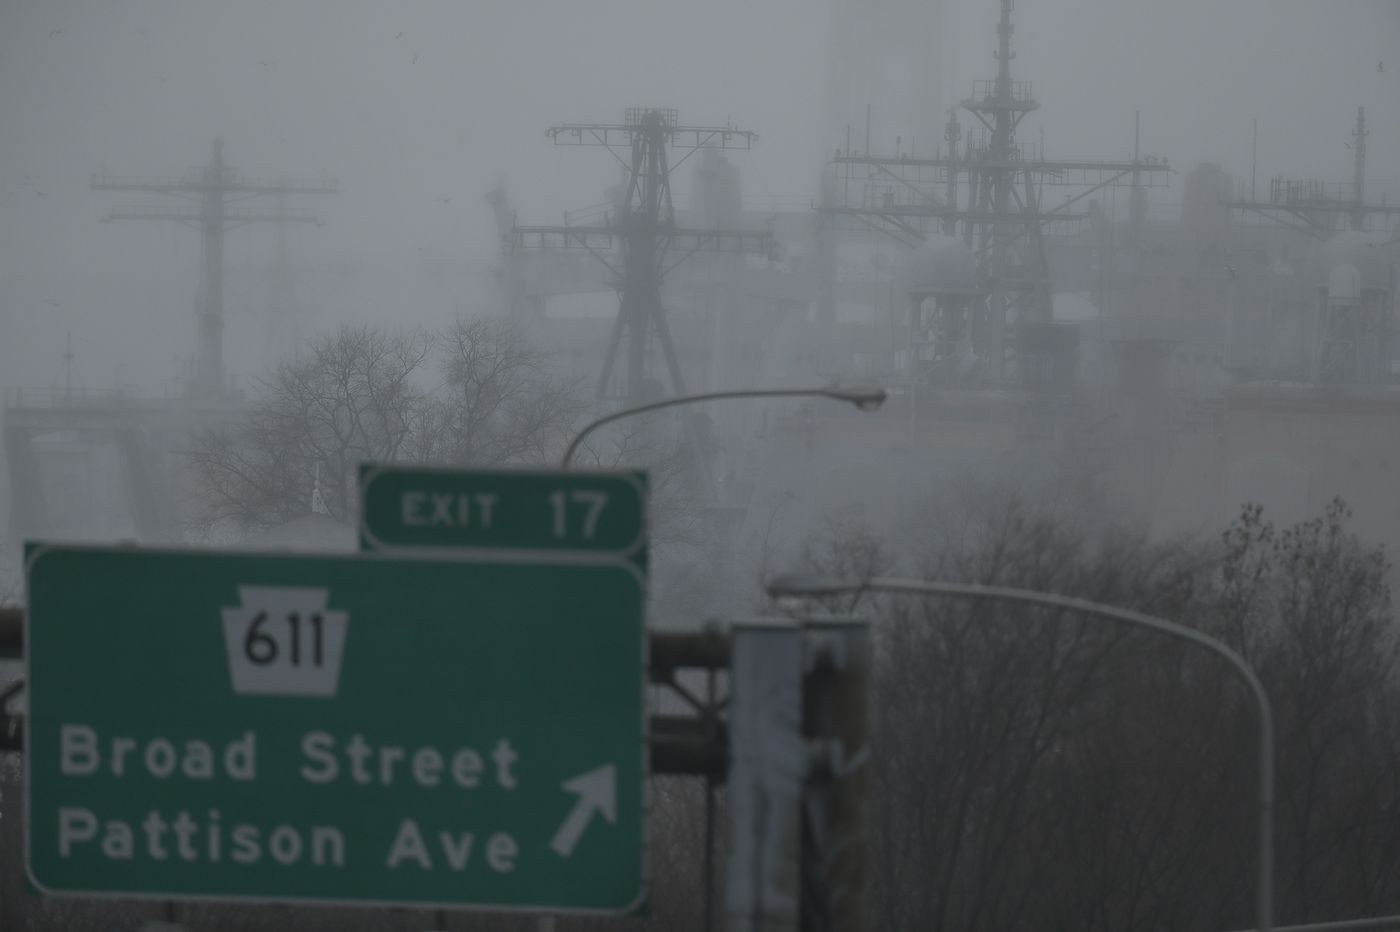 Freezing fog expected early Friday, could make roads slippery in Philly region. Snow threat next week?